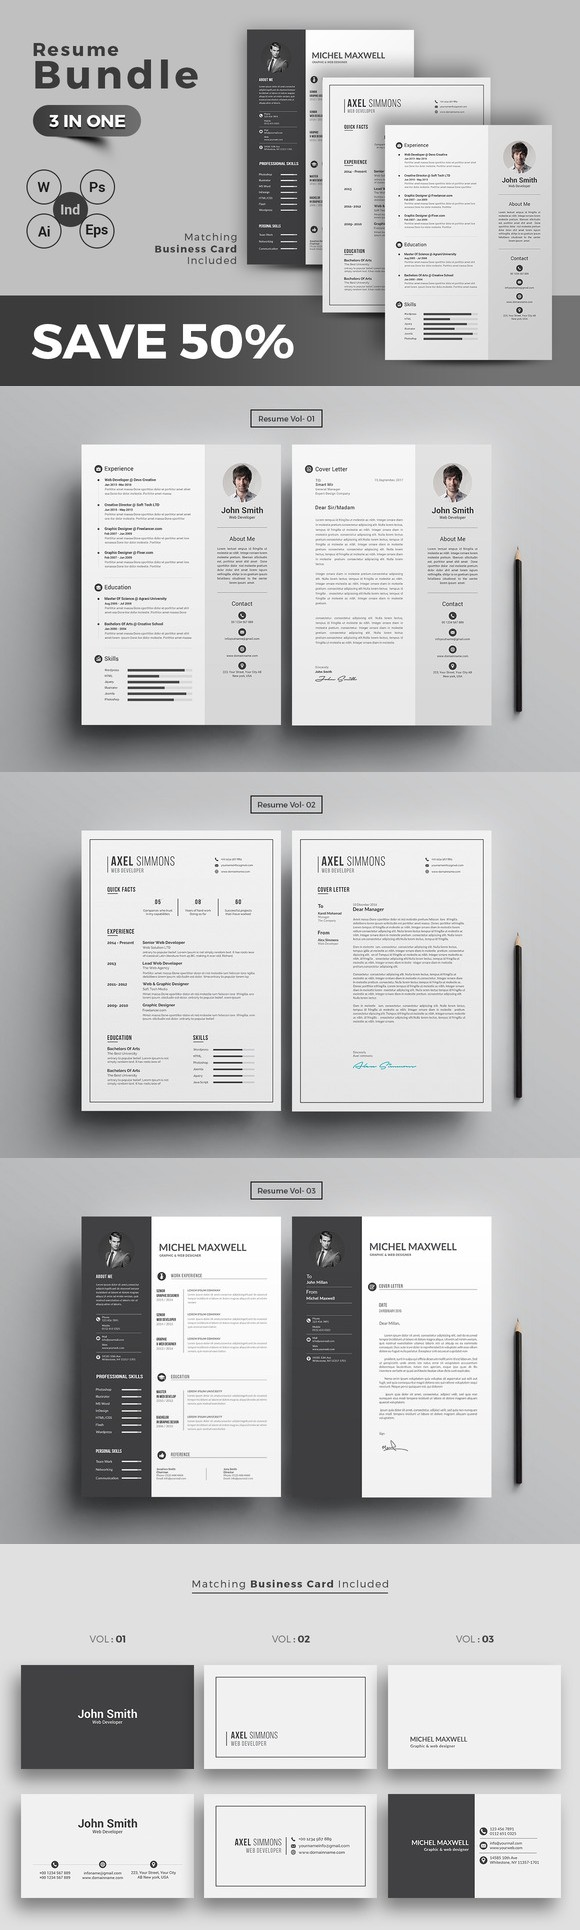 graphic design resume template%0A Resume CV Bundle            Cv TemplatePsd